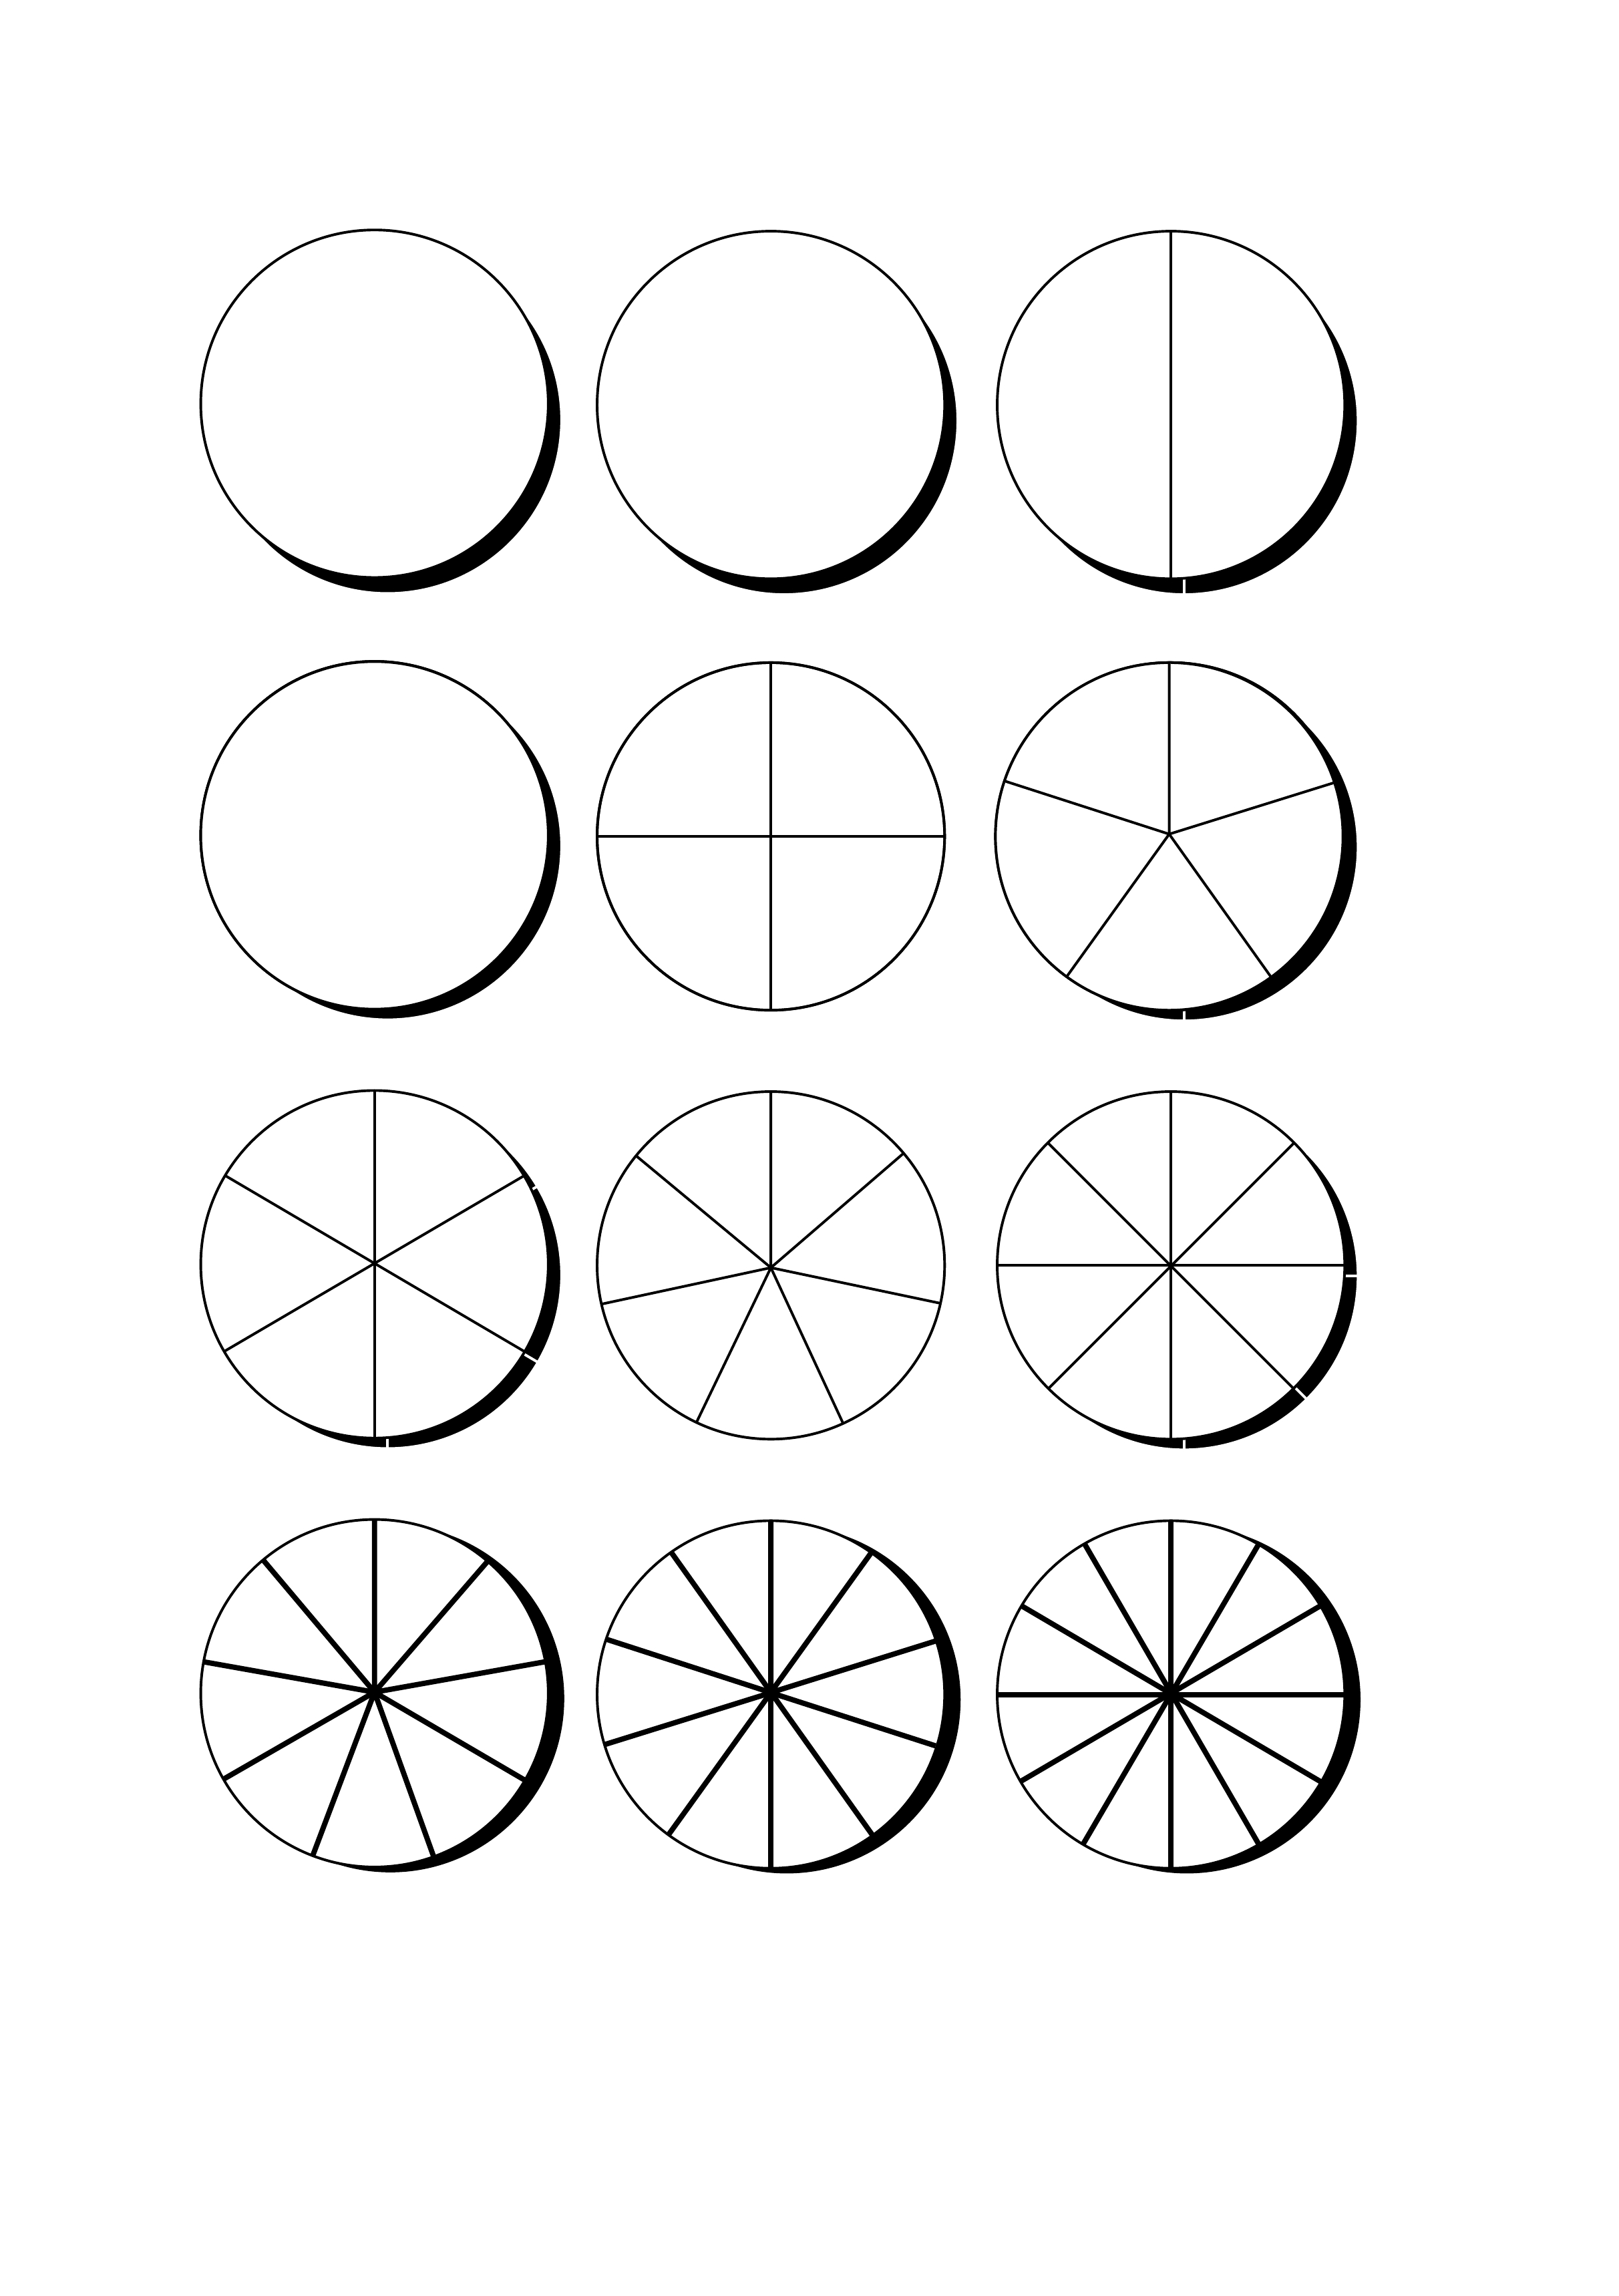 Blank Pie Chart Template Free Download - Free Printable Pie Chart